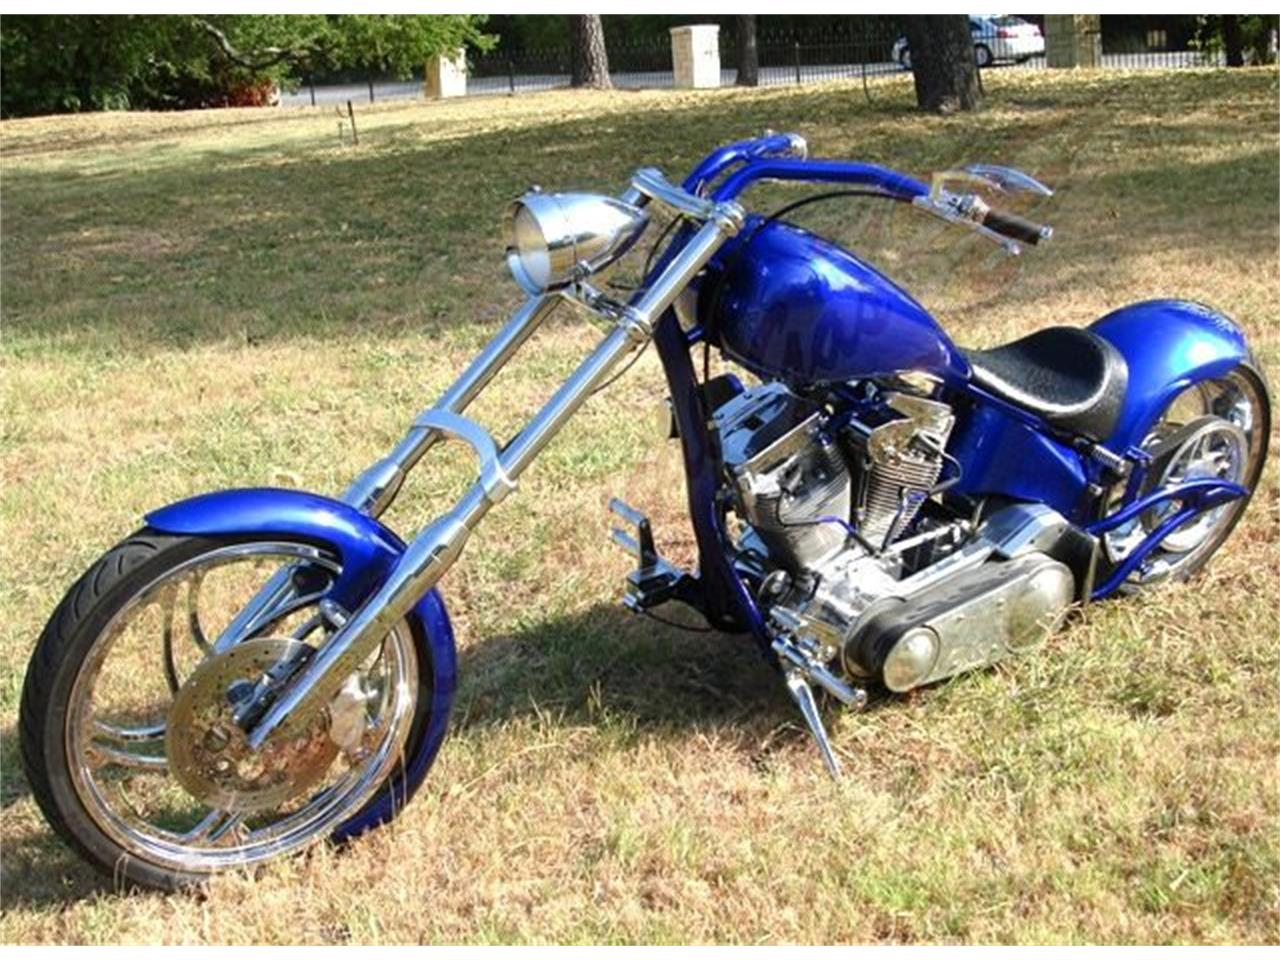 Large Picture of '03 Motorcycle located in Texas - $16,500.00 - 7JWI